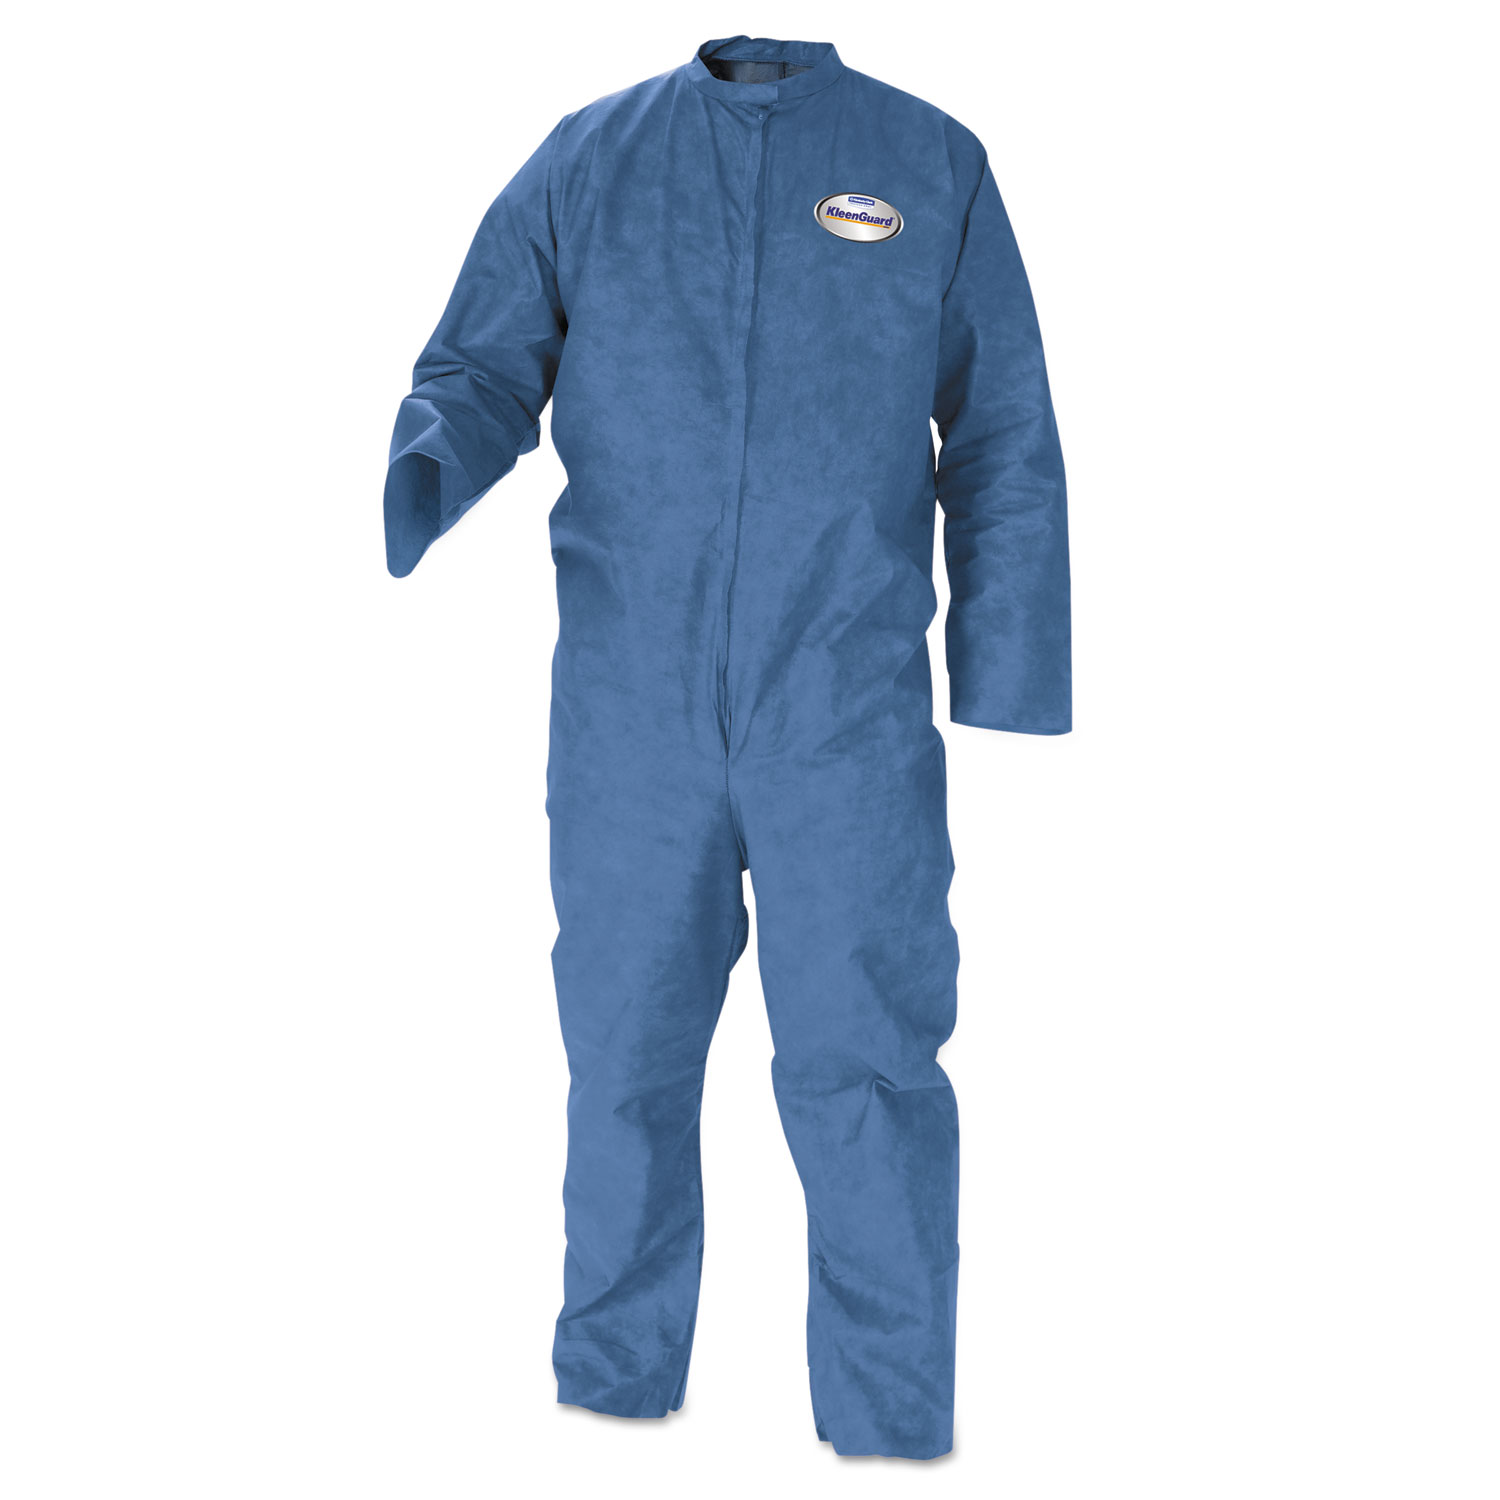 A20 Coveralls, MICROFORCE Barrier SMS Fabric, Blue, X-Large, 24/Carton